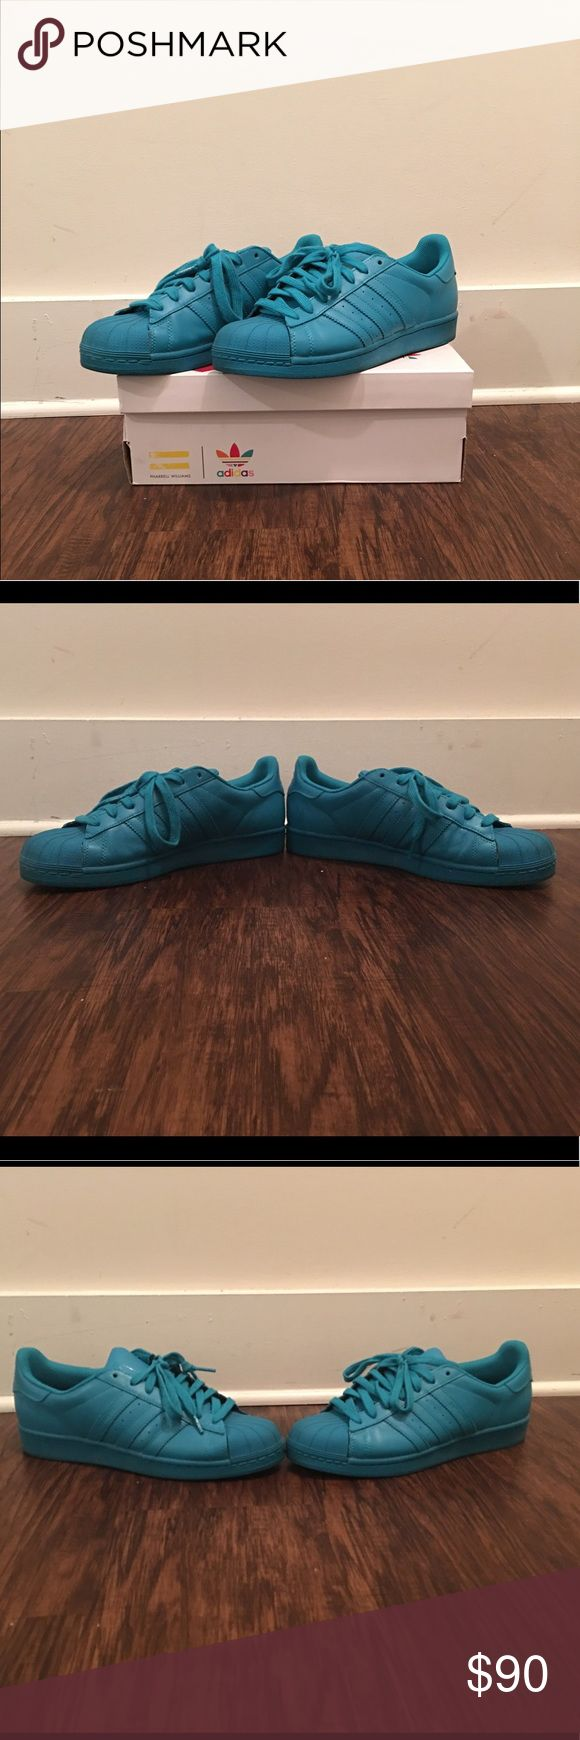 Pharrell Superstar Adicolor adidas: Lab Green Men Only worn for one season so in great condition! Limited edition of the pharell superstar collection. Color in lab green. Perfect especially for the Spring and summer. Adds a great pop of color to your outfit. adidas Shoes Sneakers